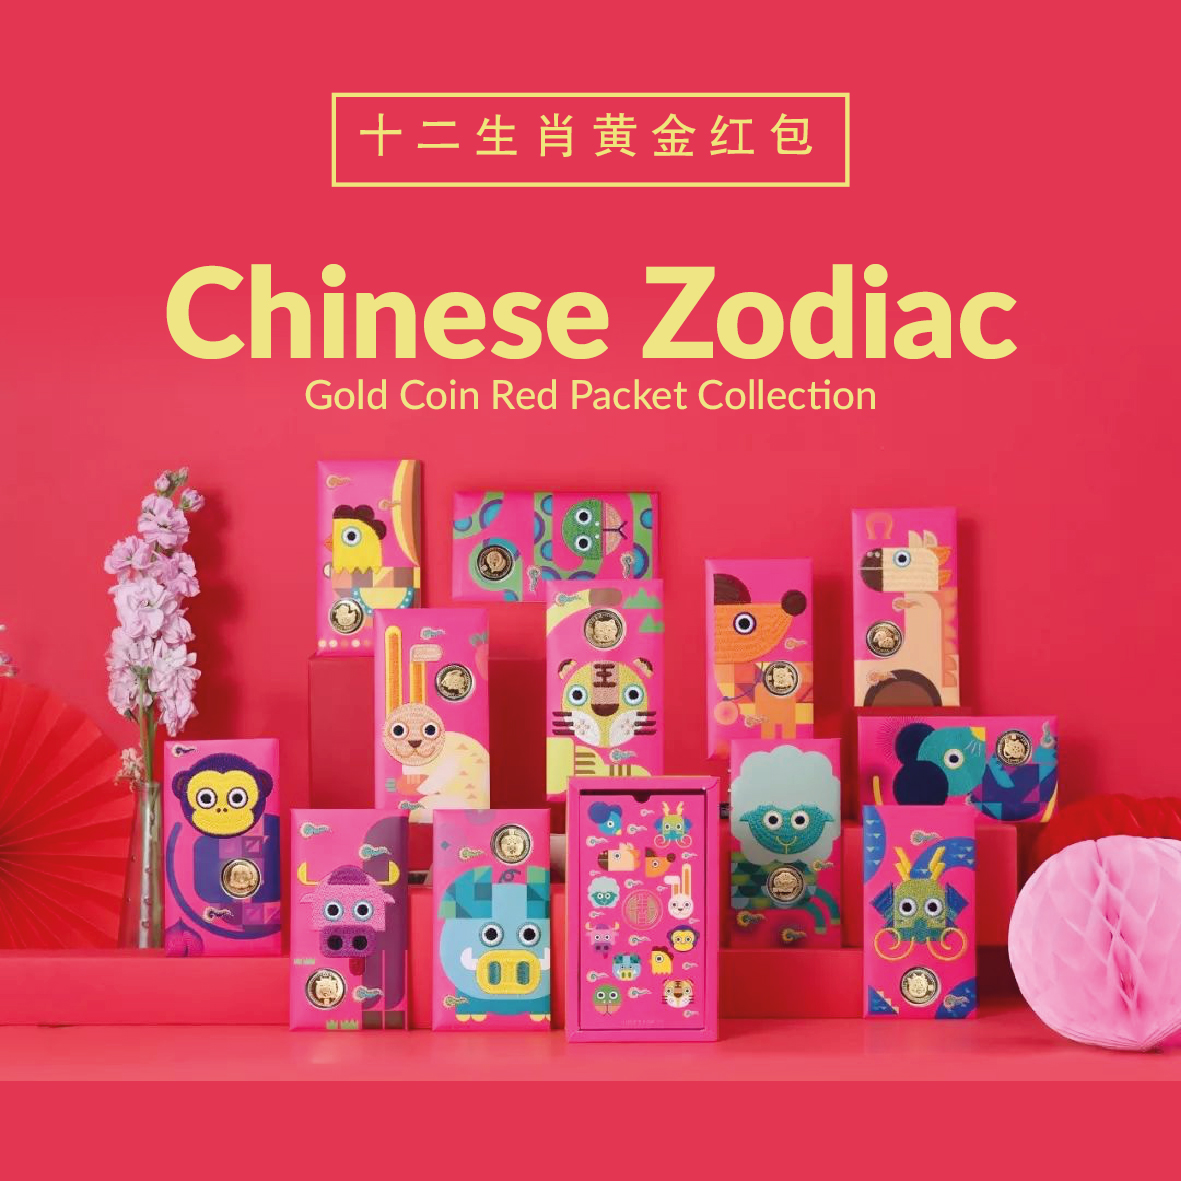 Chinese Zodiac Gold Coin Red Packet Collection (Set)